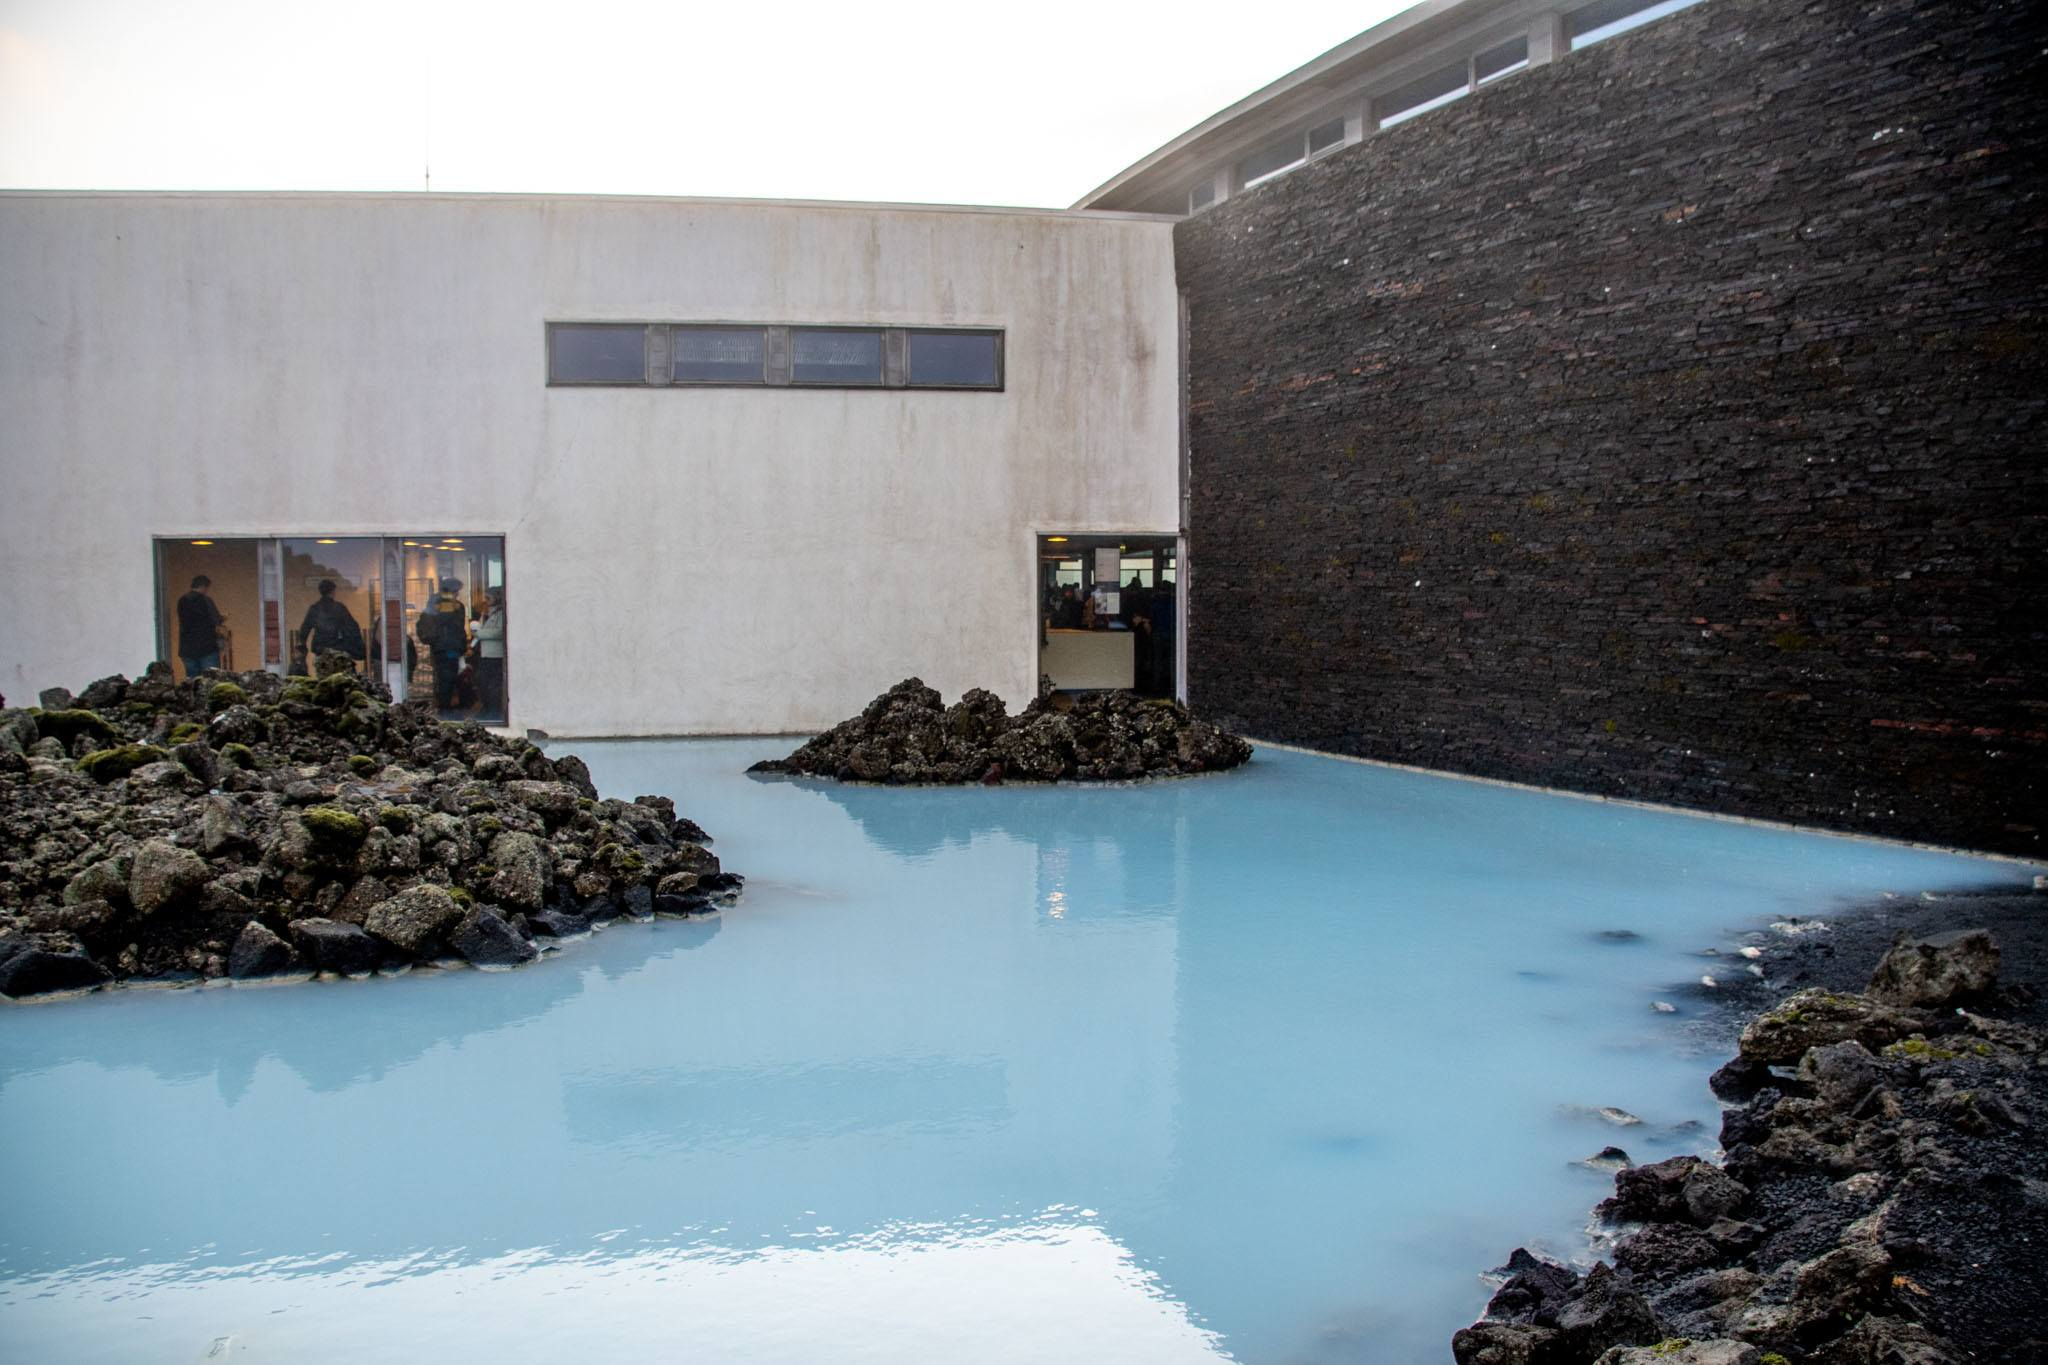 The architecture of the spa